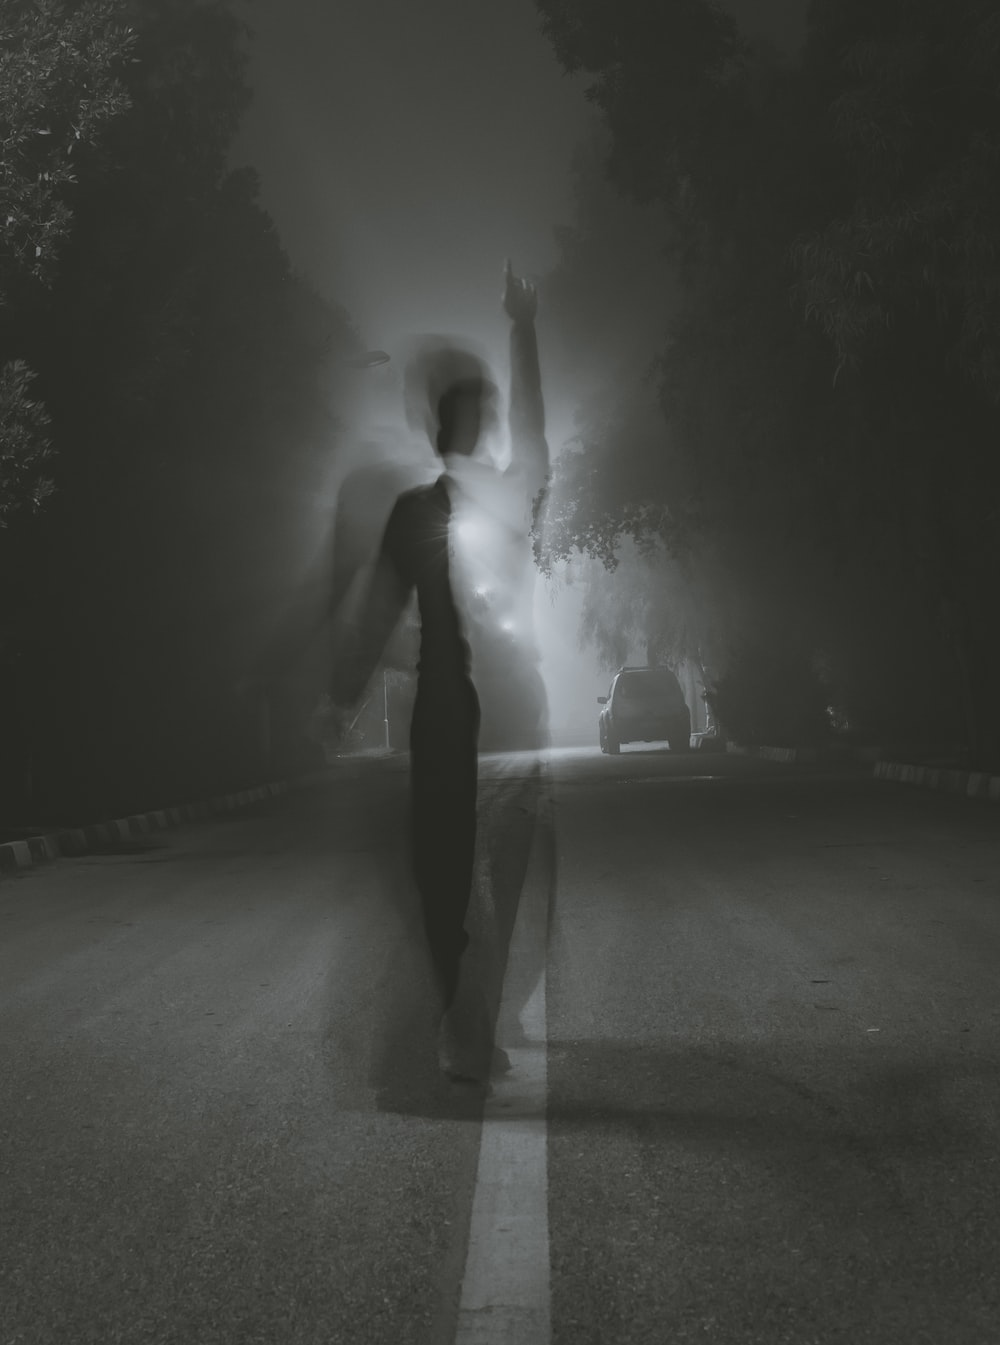 man standing at middle of road